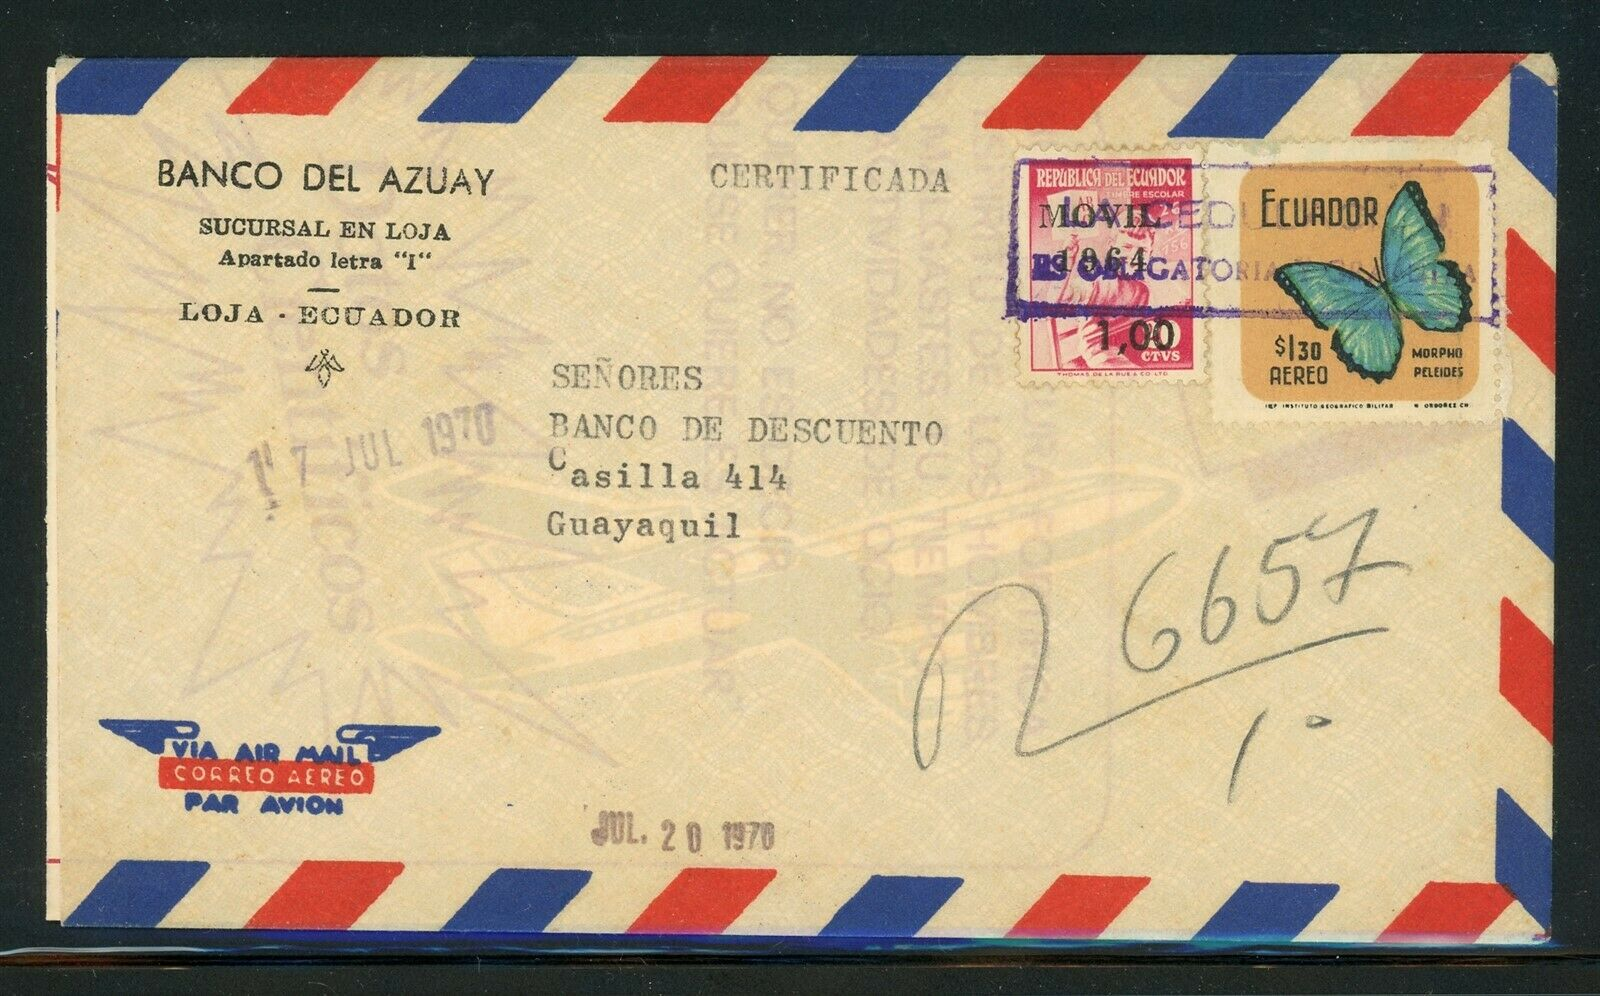 ECUADOR Butterflies Postal History Specialized Scott C461 REG Air Cover LOJA  - $0.60